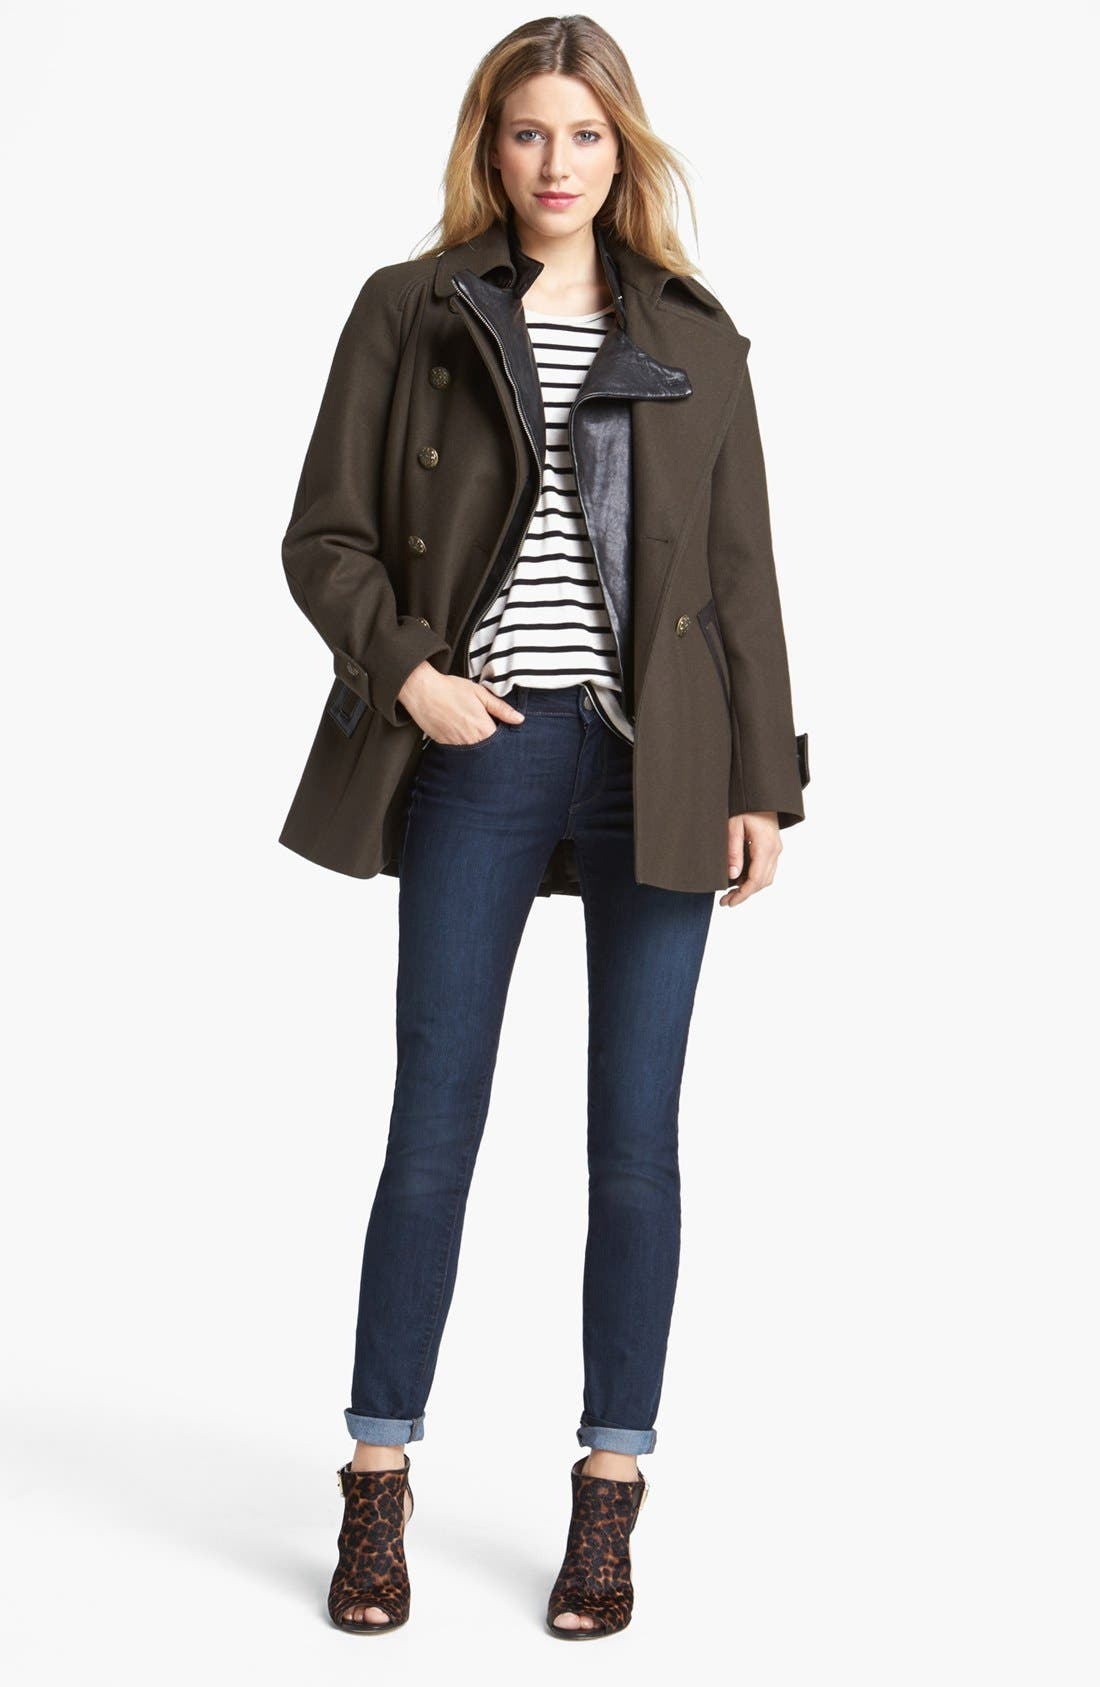 Alternate Image 1 Selected - DKNY Double Breasted Military Peacoat